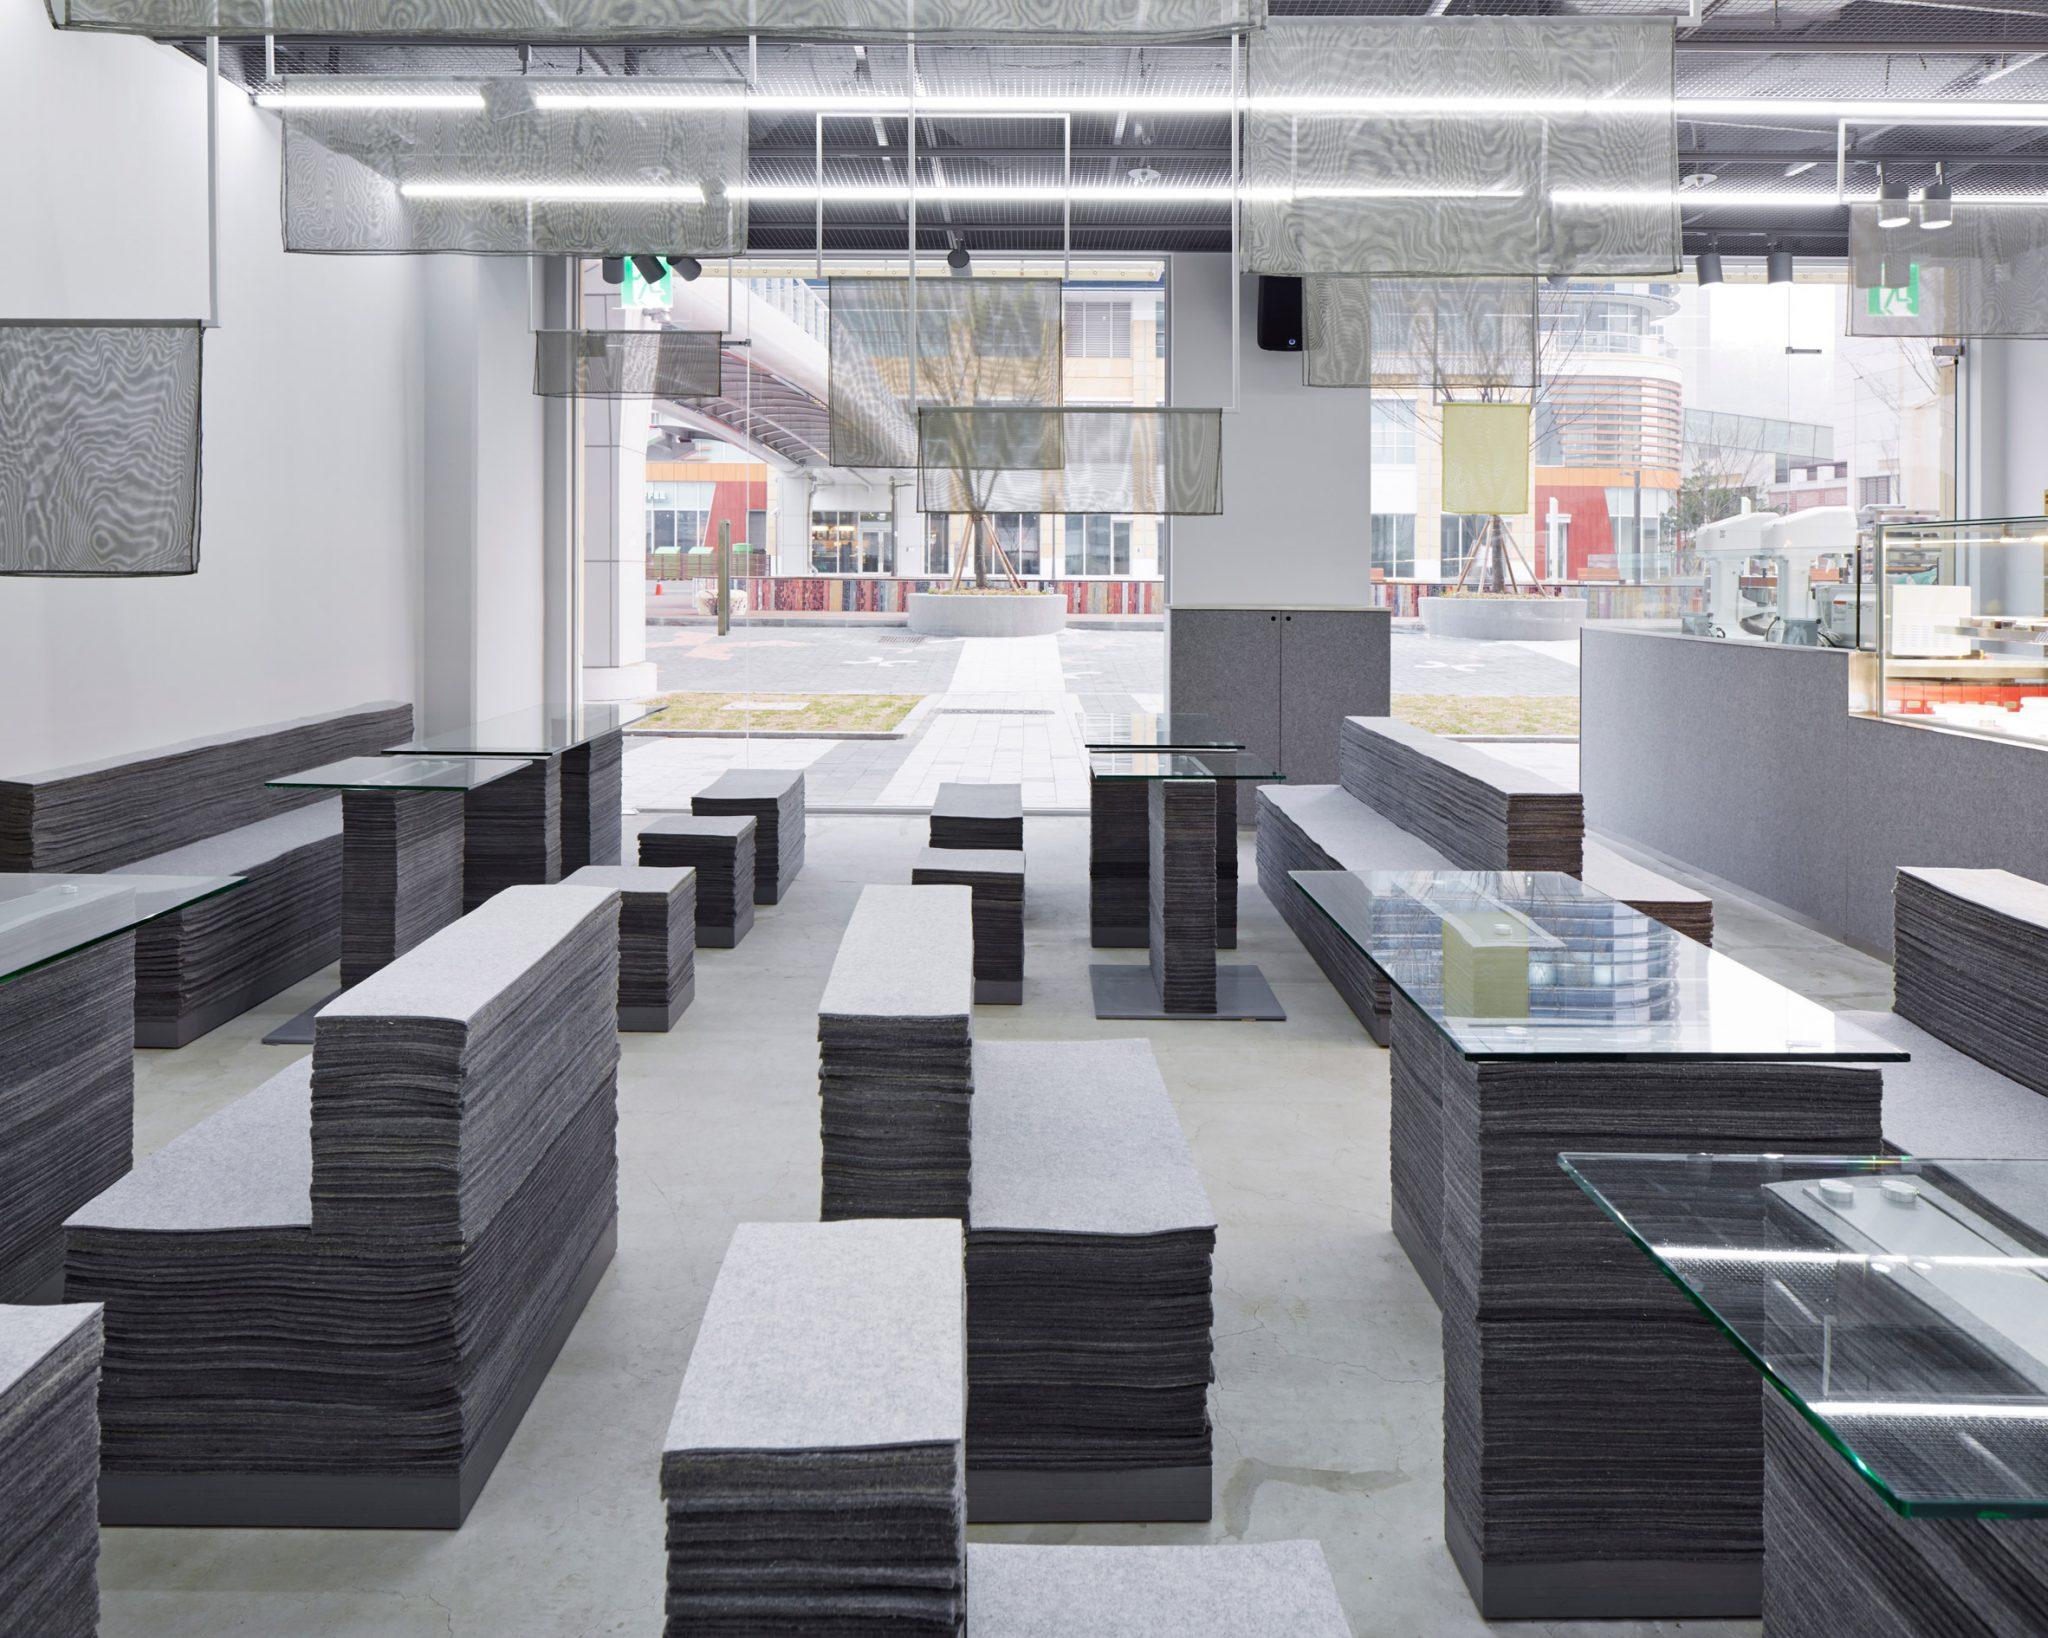 on-ne-sait-jamais-and-felt-series-nameless-architecture-interiors-south-korea_dezeen_2364_col_3